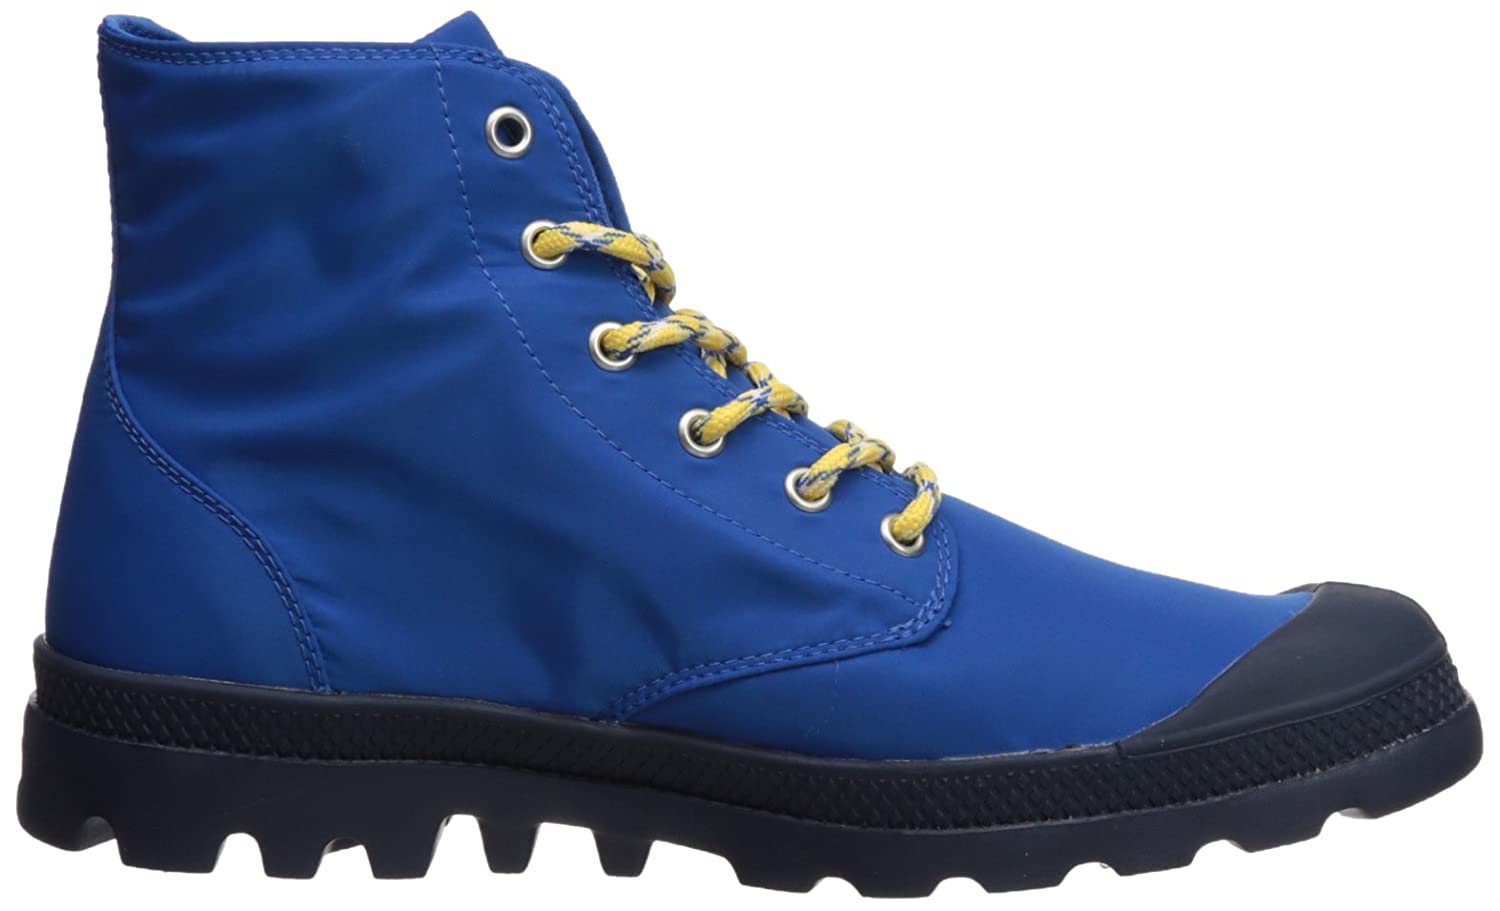 Palladium Unisex Puddle Ankle B(M) Boot B074P8HCJP 5 B(M) Ankle US|Blue d68dc8